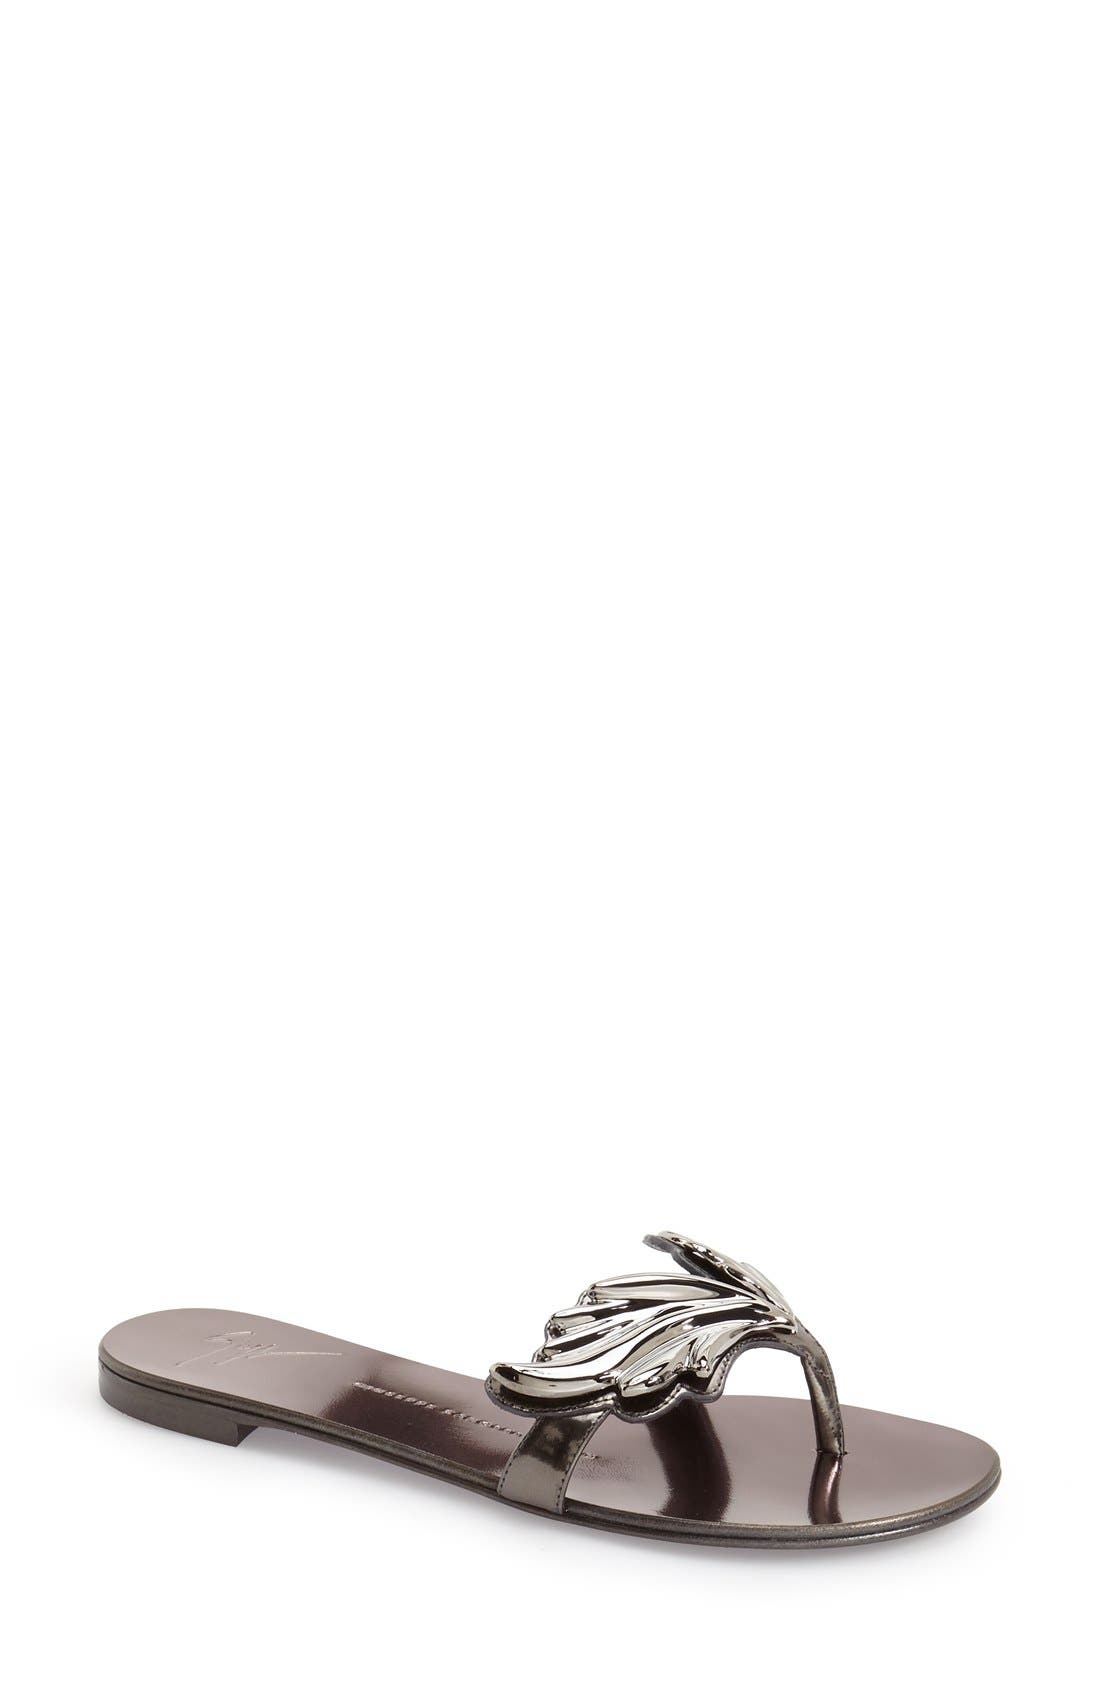 'Coline' Sandal,                             Main thumbnail 1, color,                             Pewter Leather